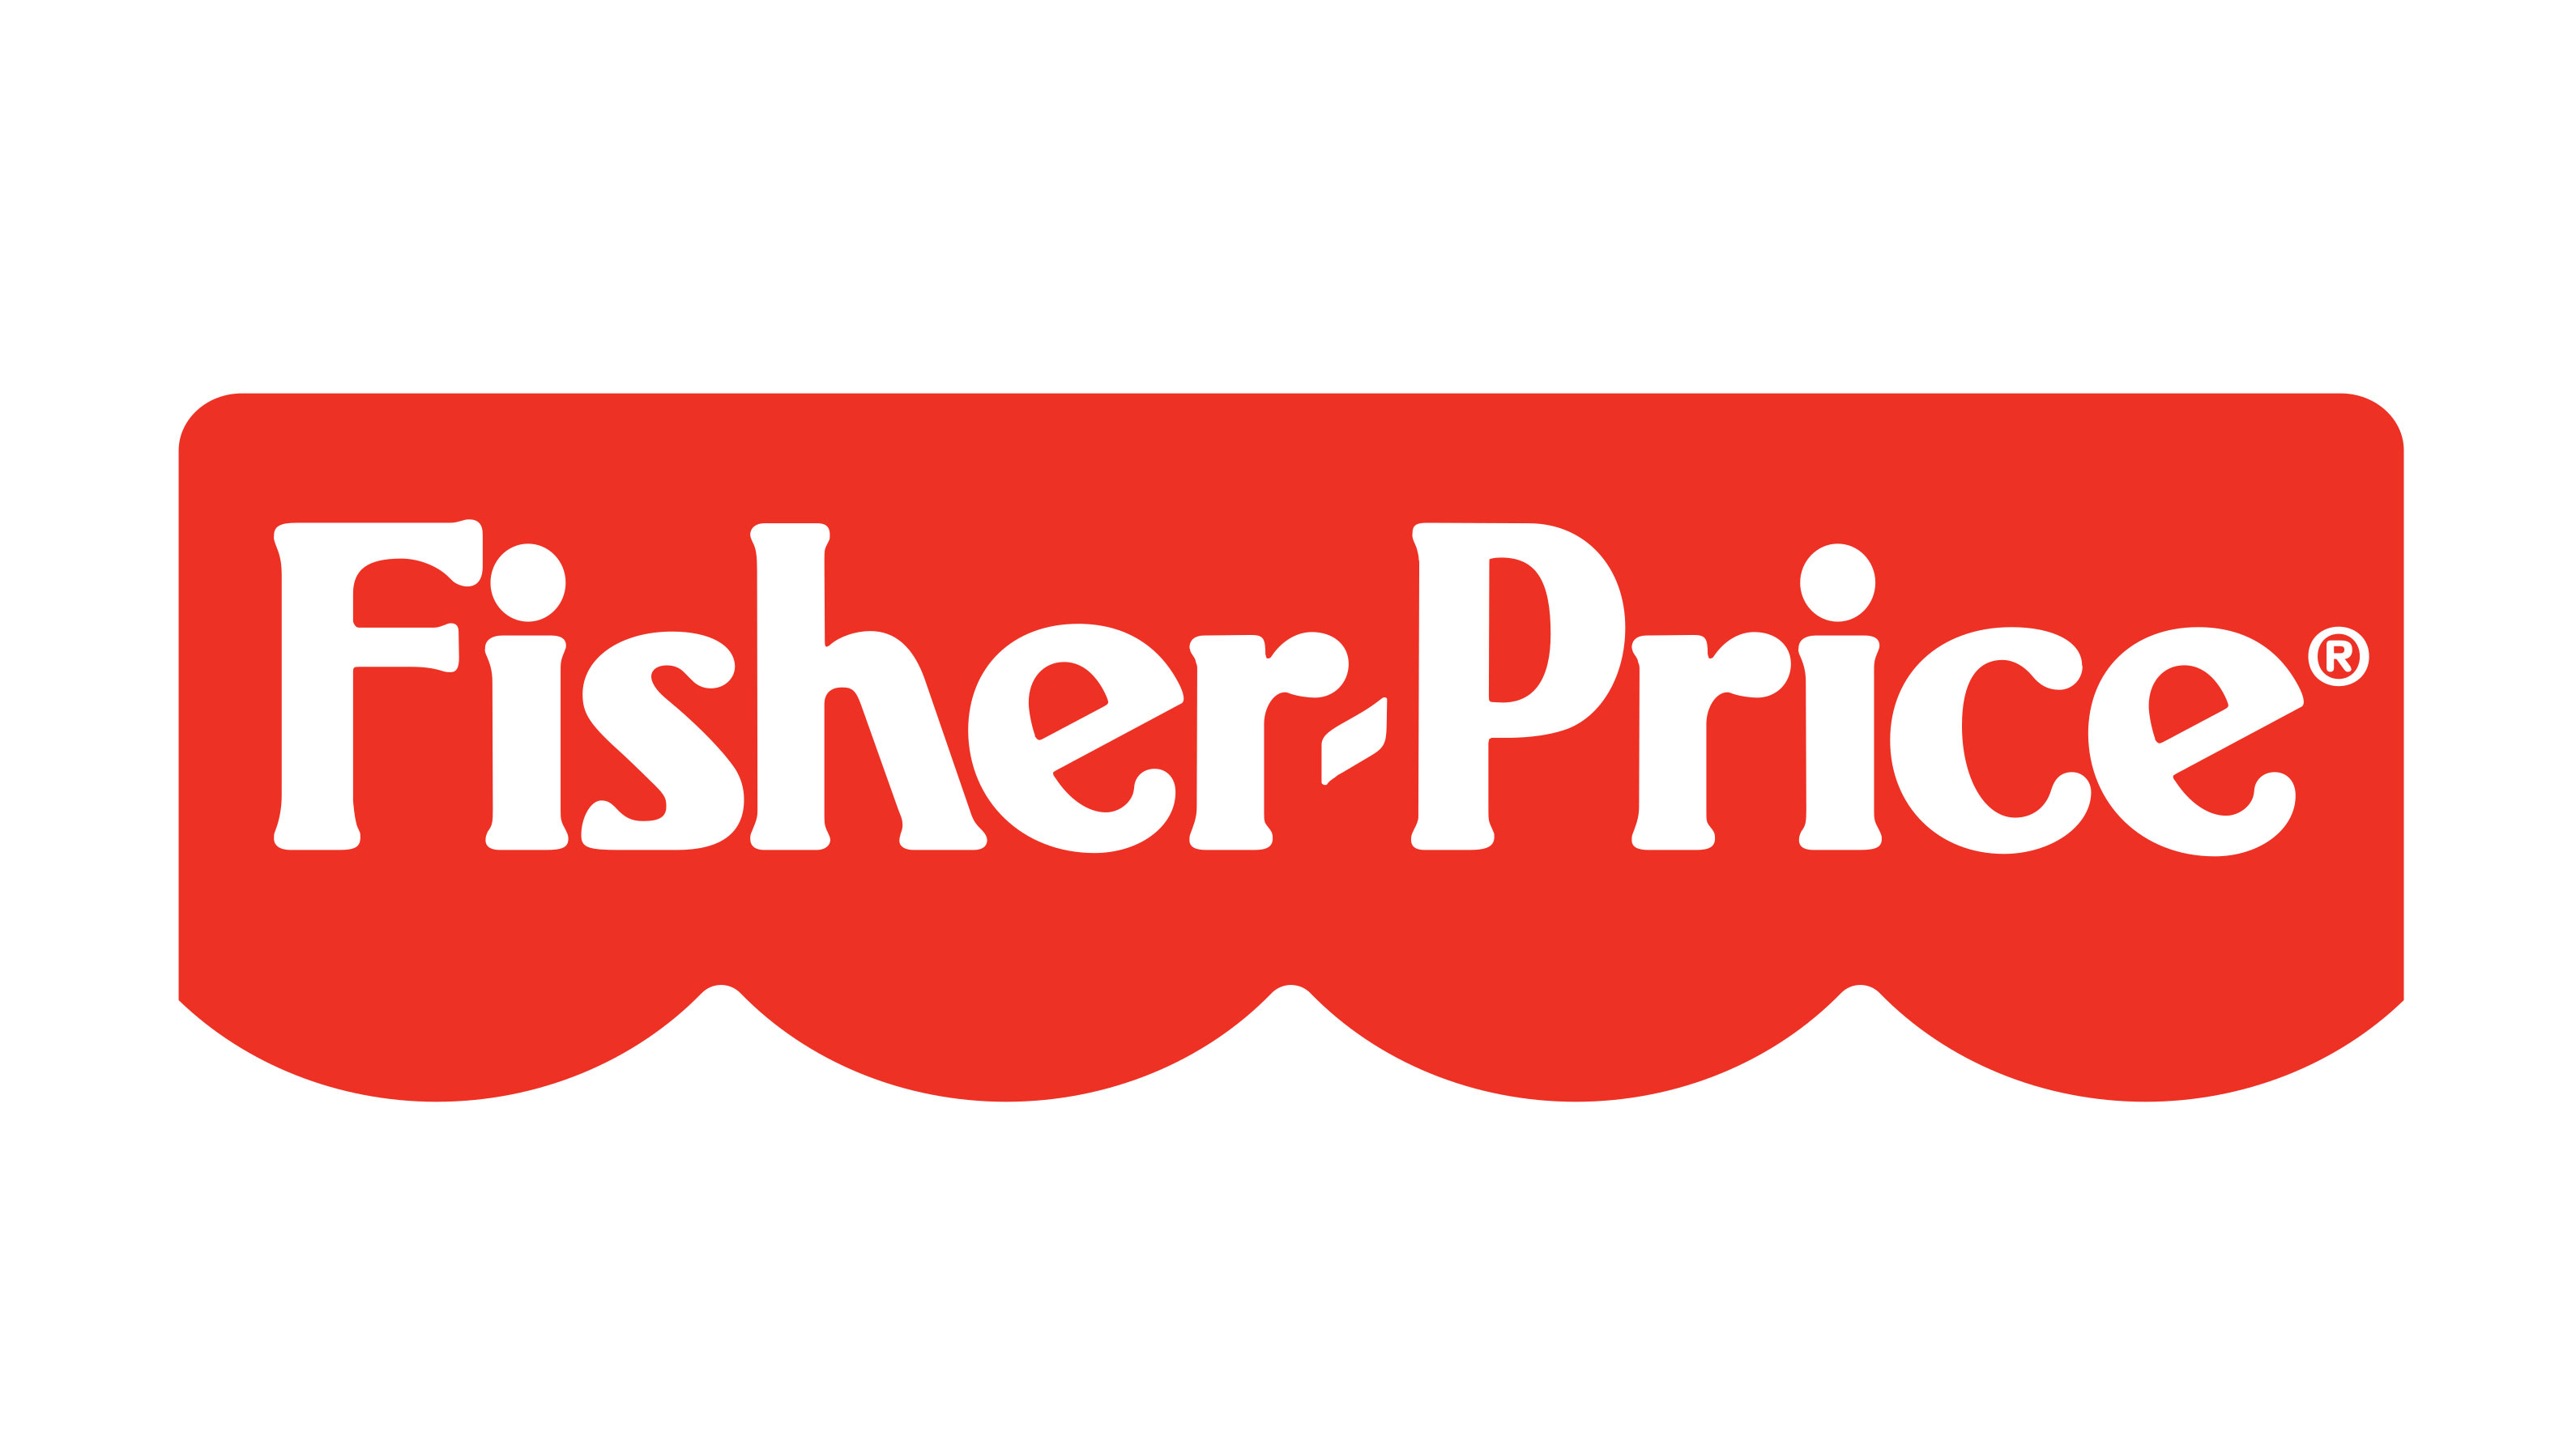 Fisher-Price's new logo puts the fun back in branding - Ειδήσεις ...